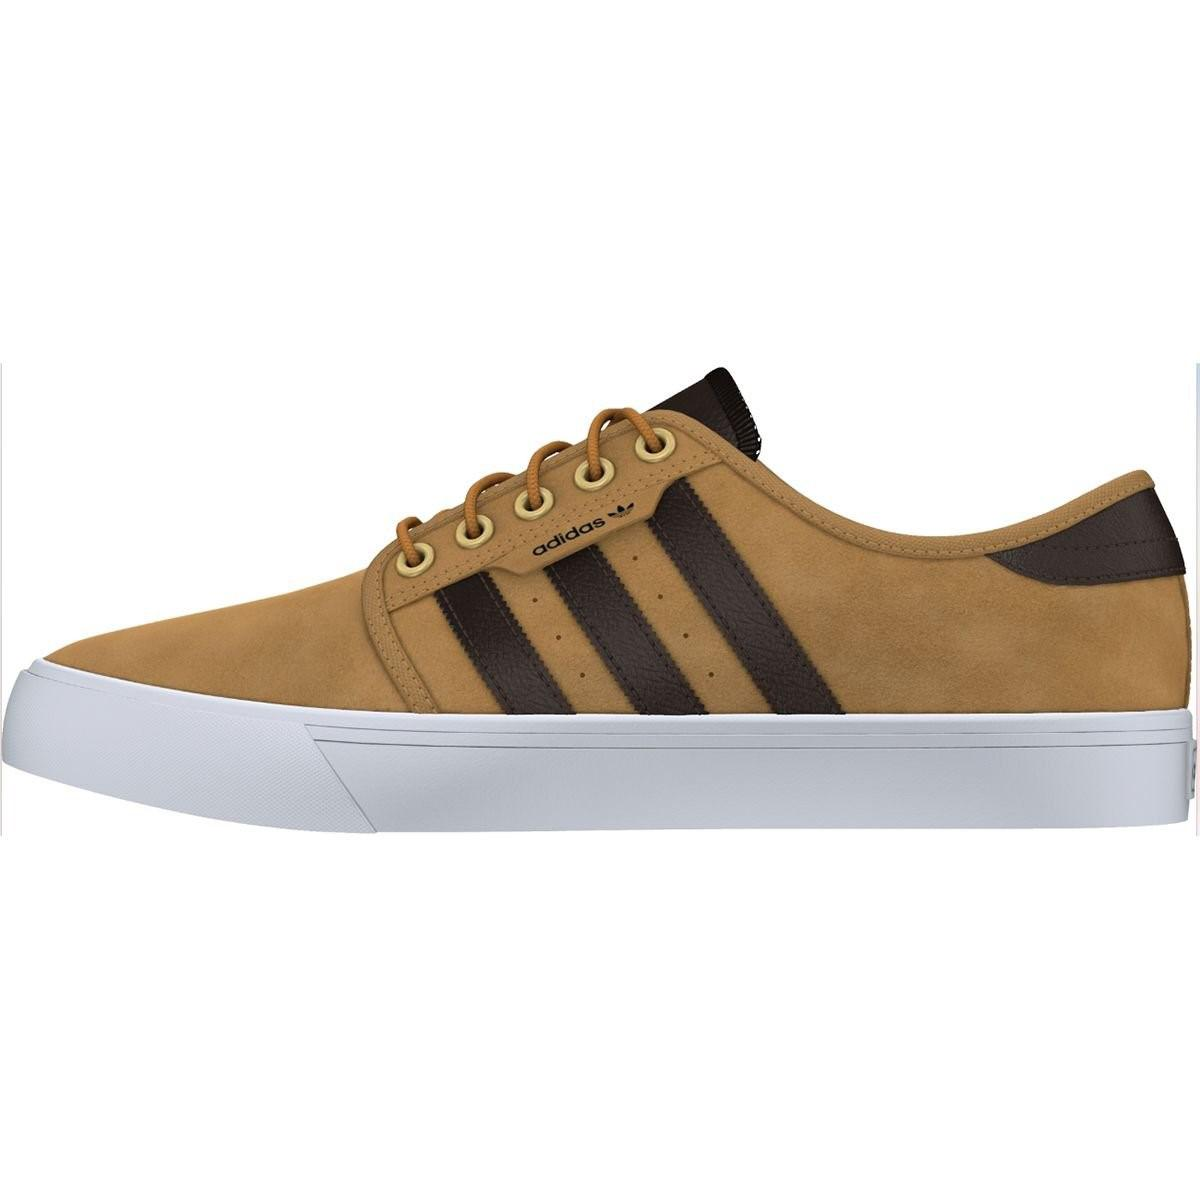 adidas brown shoe laces